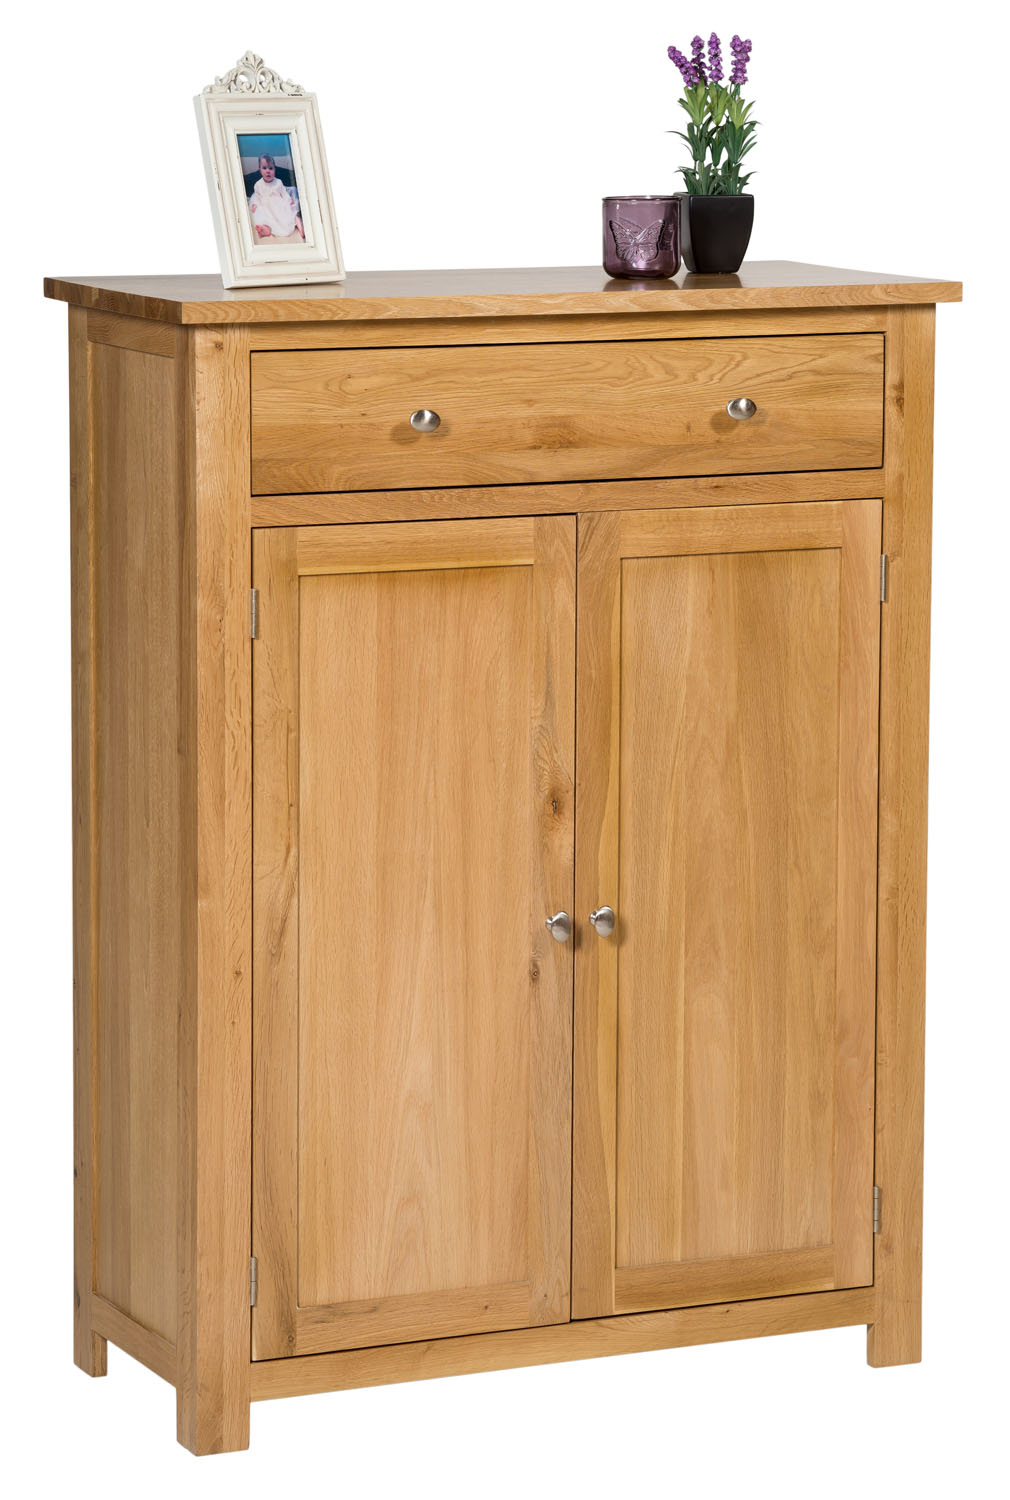 Large oak shoe storage cabinet wooden hallway cupboard